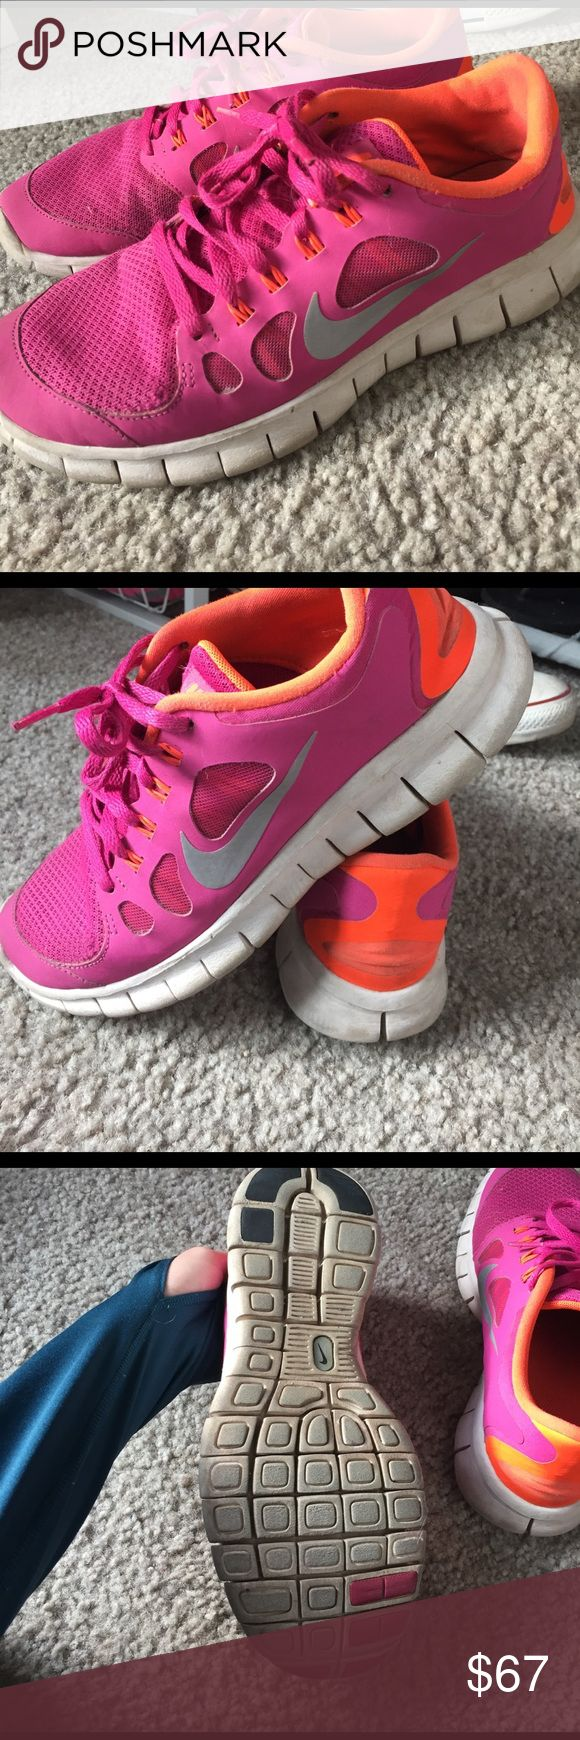 Nike shoes size 7 Good condition shoes. Worn a few times but they look good ! I can clean them up a little bit too to make them look brand new! Nike Shoes Athletic Shoes